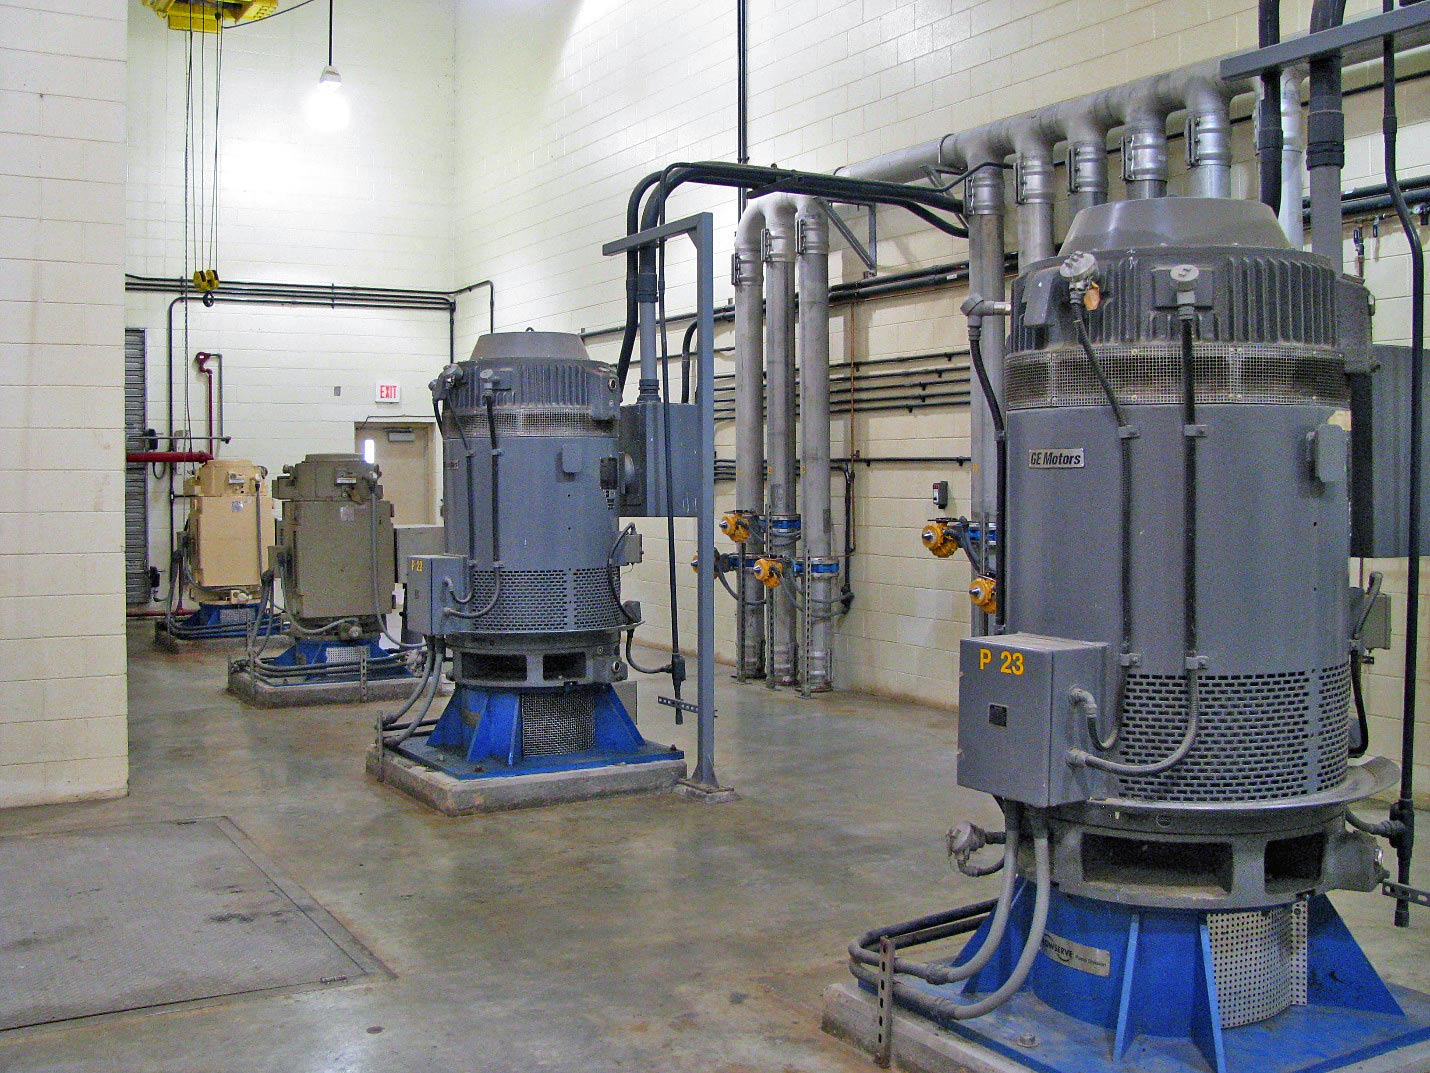 Virtual Tour Pump Station Wiring Raw Water From The Chesdin Reservoir Is Pumped Up To Treatment Plant Using